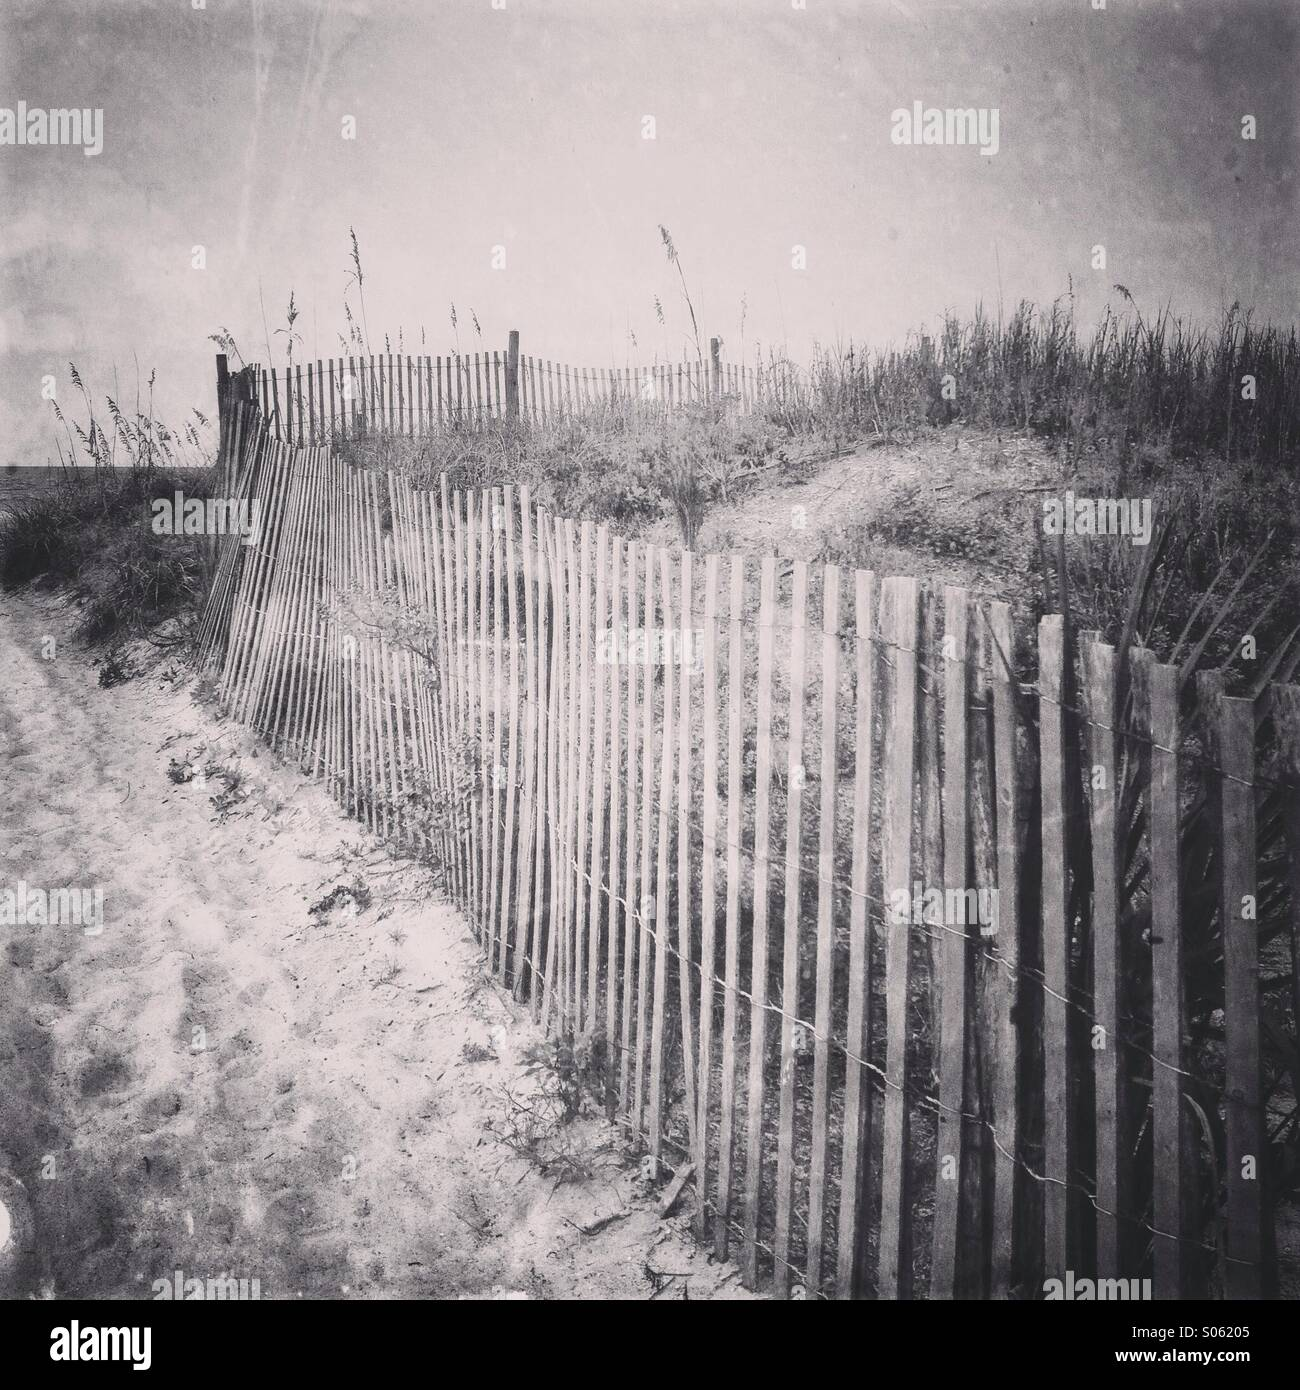 An old wooden beach fence runs along the sand dunes - Stock Image